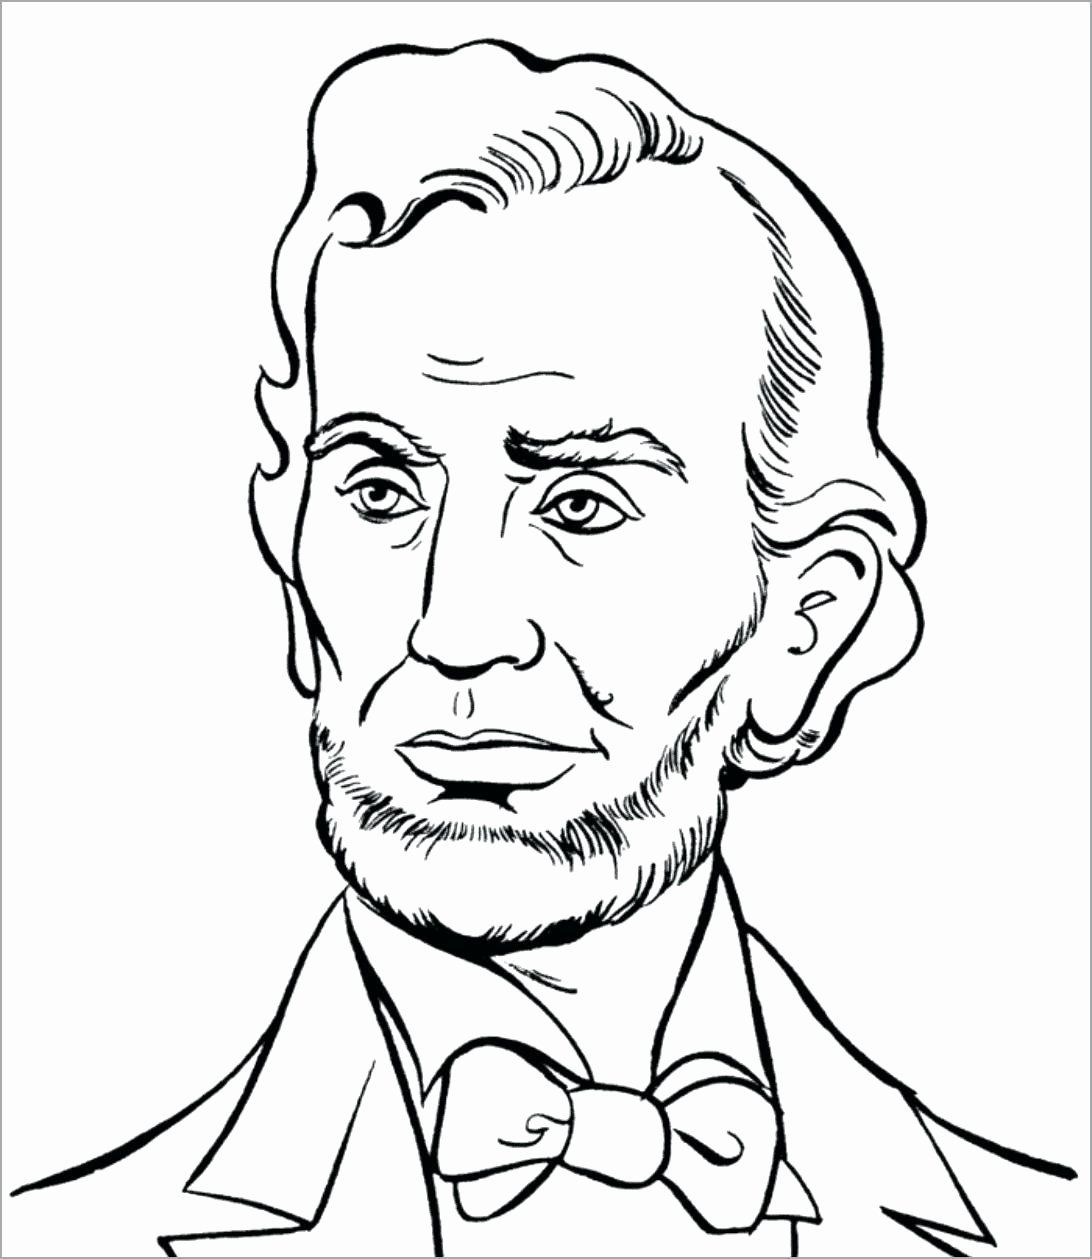 Presidents Day Coloring Sheet Best Of President Abraham Lincoln Coloring Pages Regionpaper Avengers Coloring Pages Coloring Pages Cartoon Coloring Pages